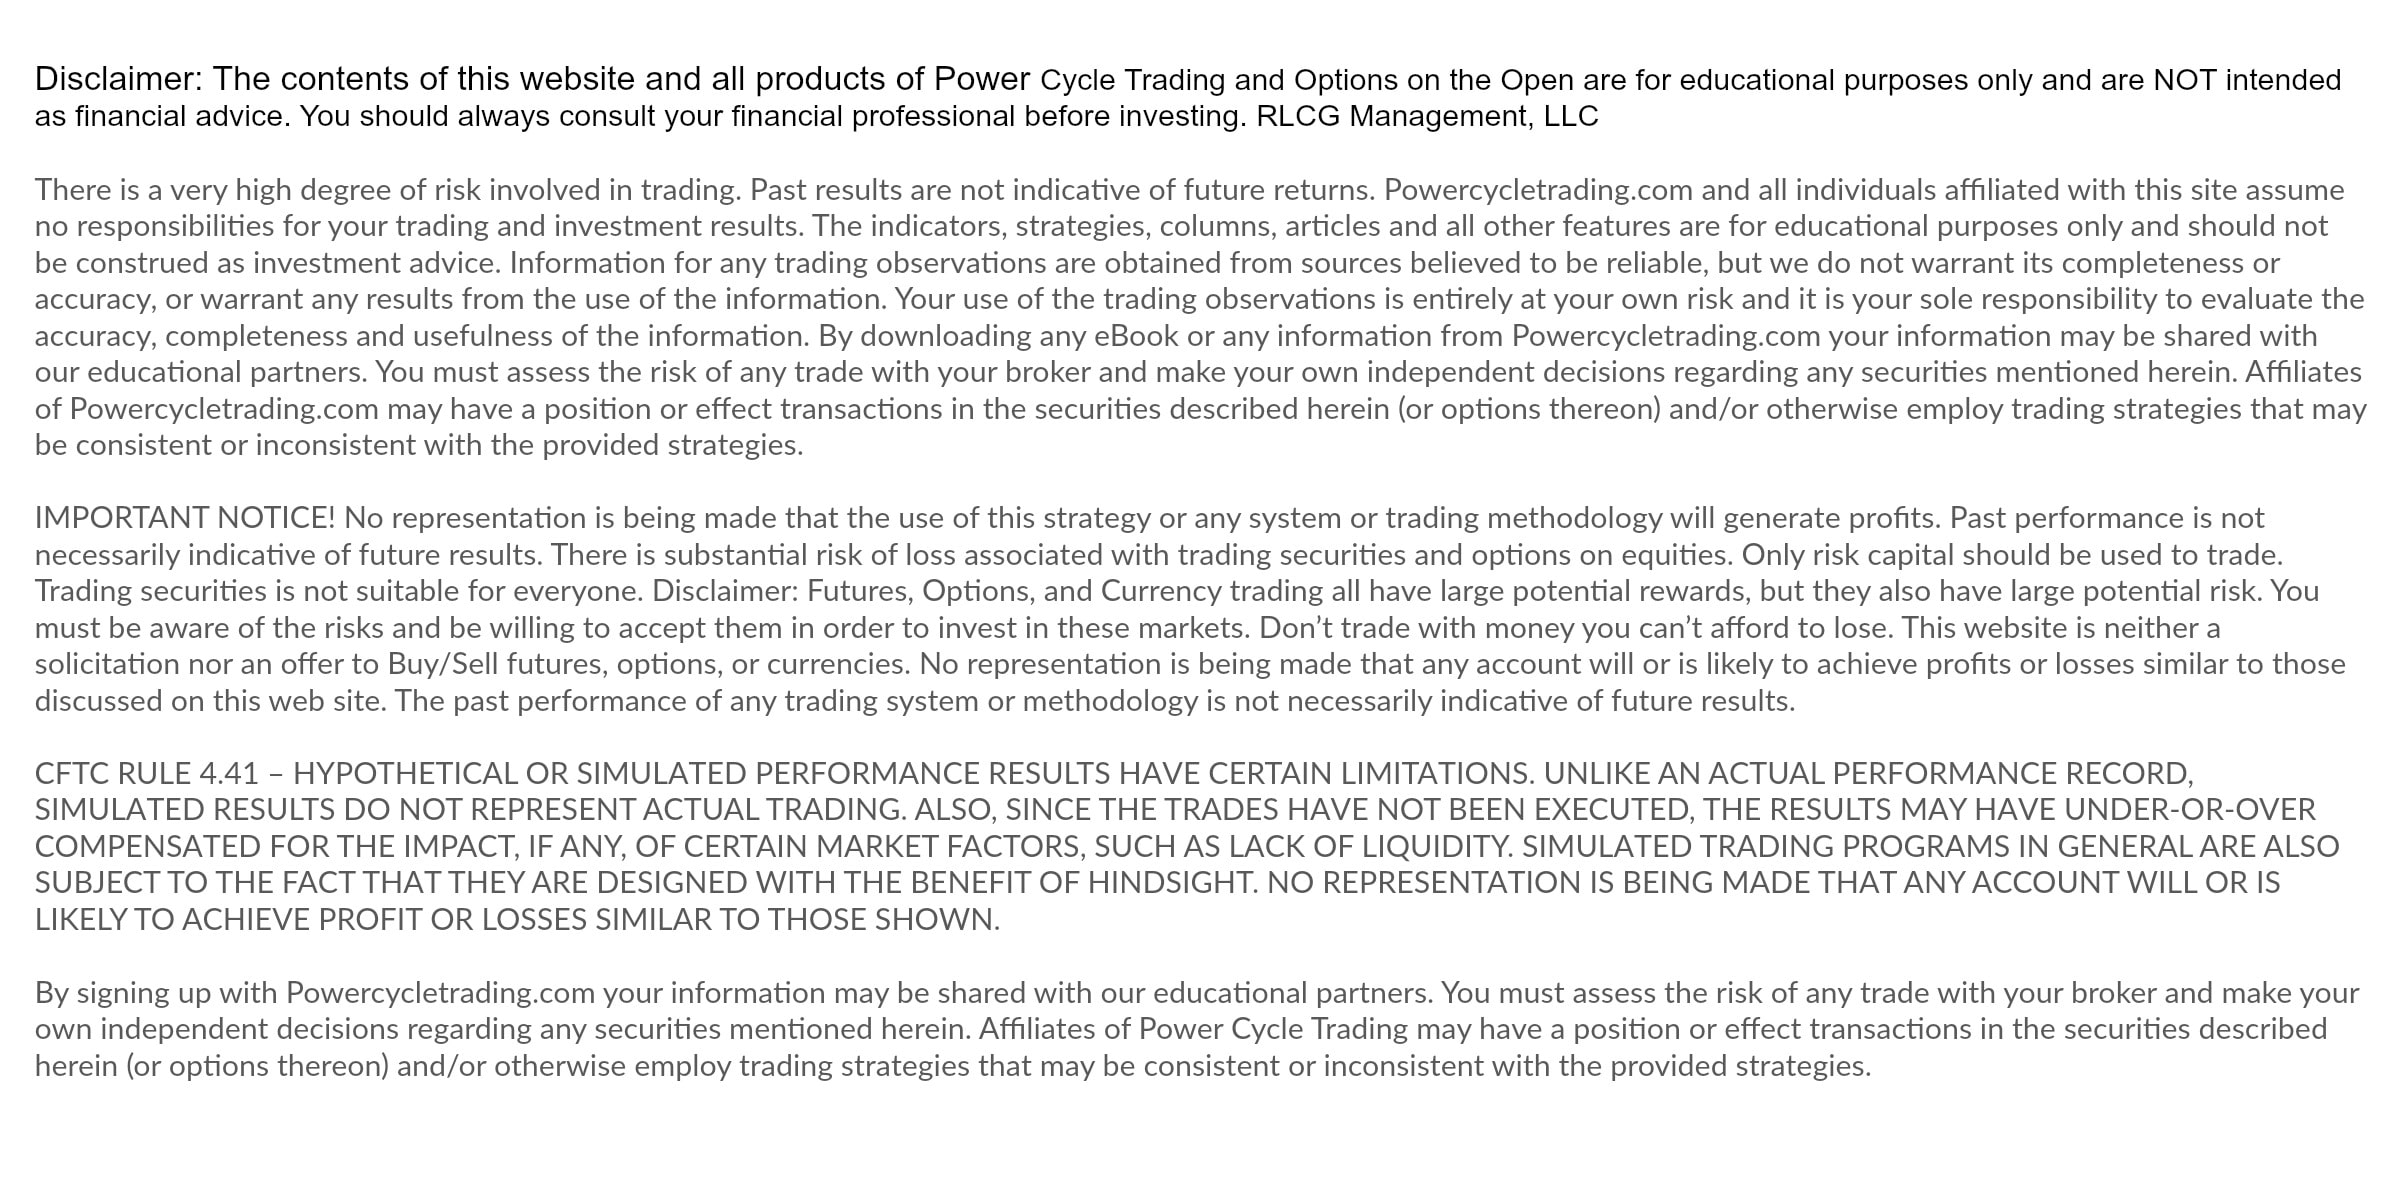 Options trading disclaimer